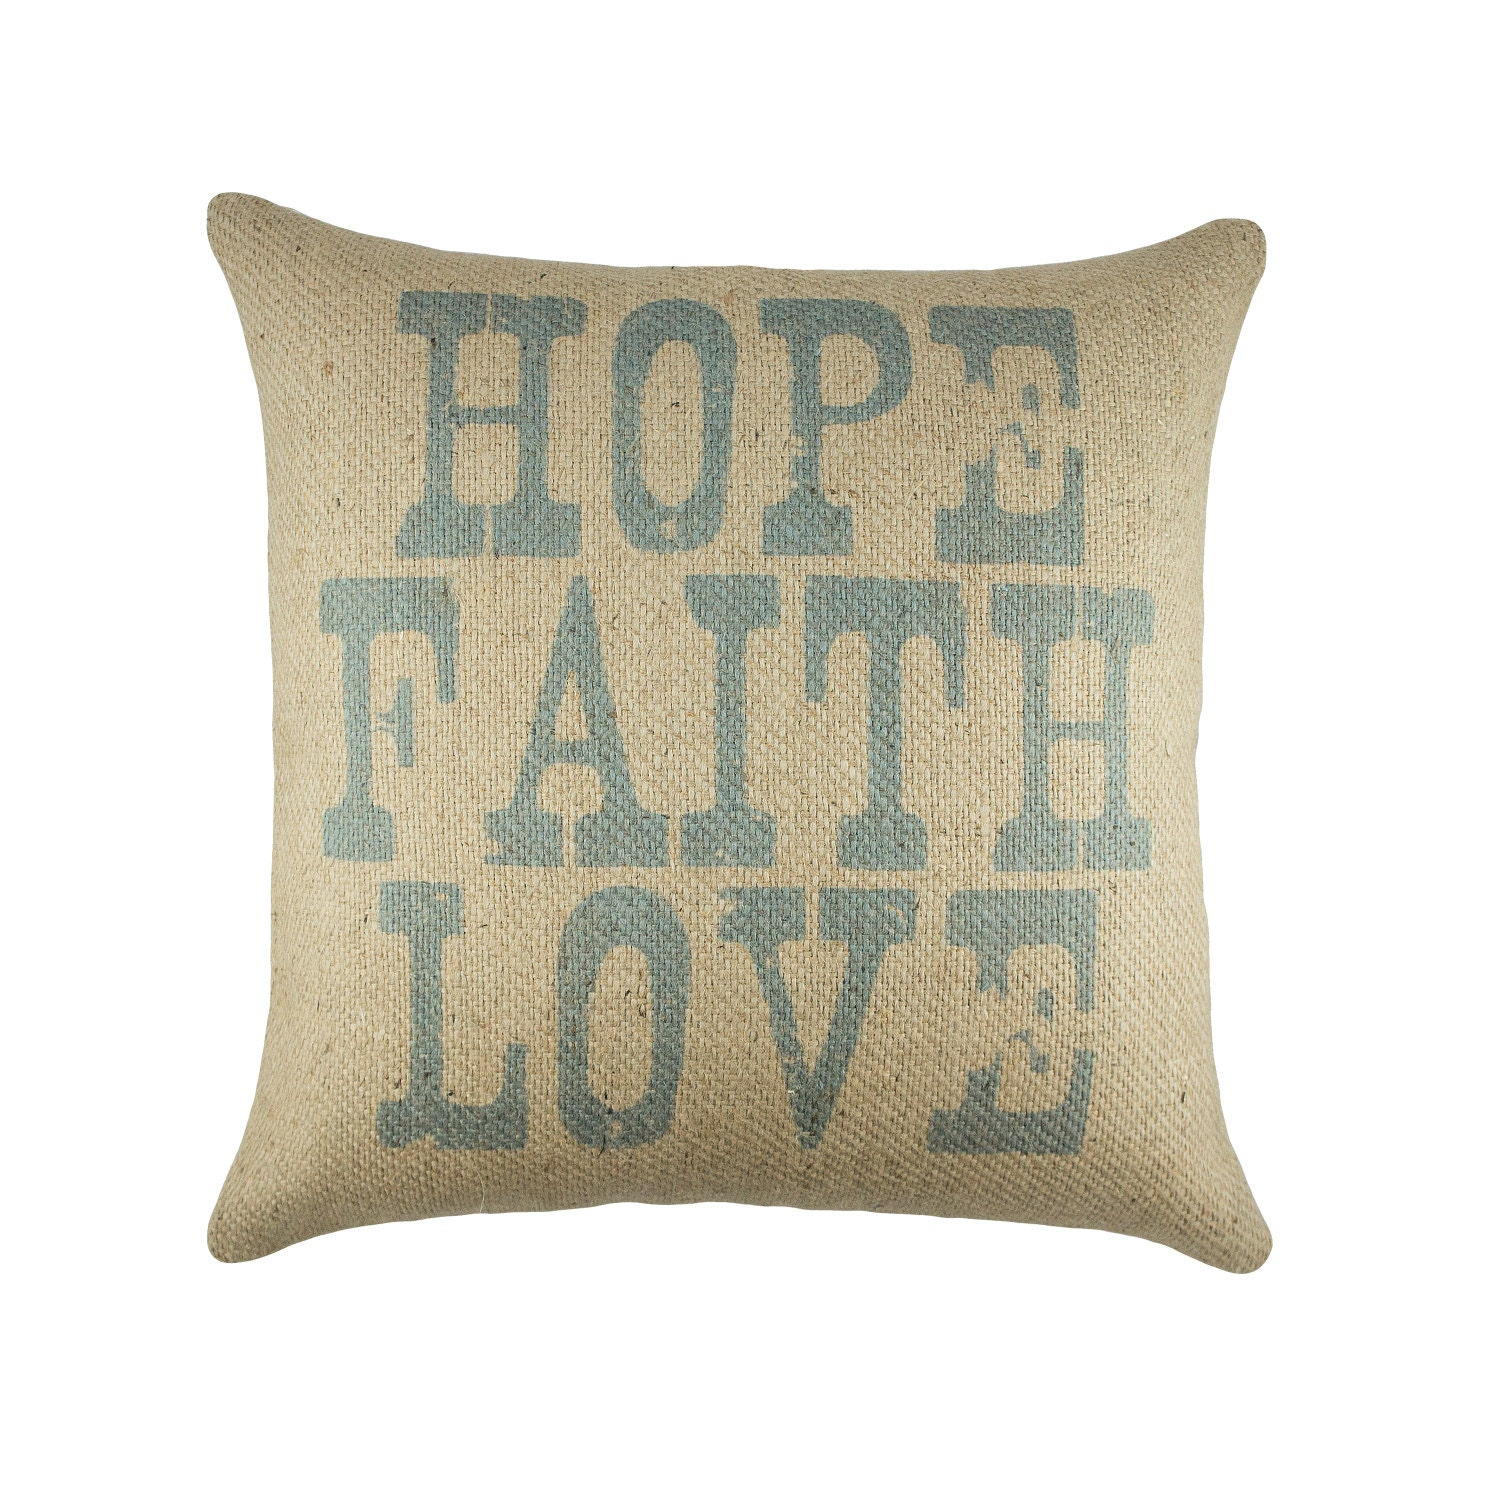 Decorative Love Pillow : Hope Faith Love Pillow Rustic Burlap Pillow Decorative